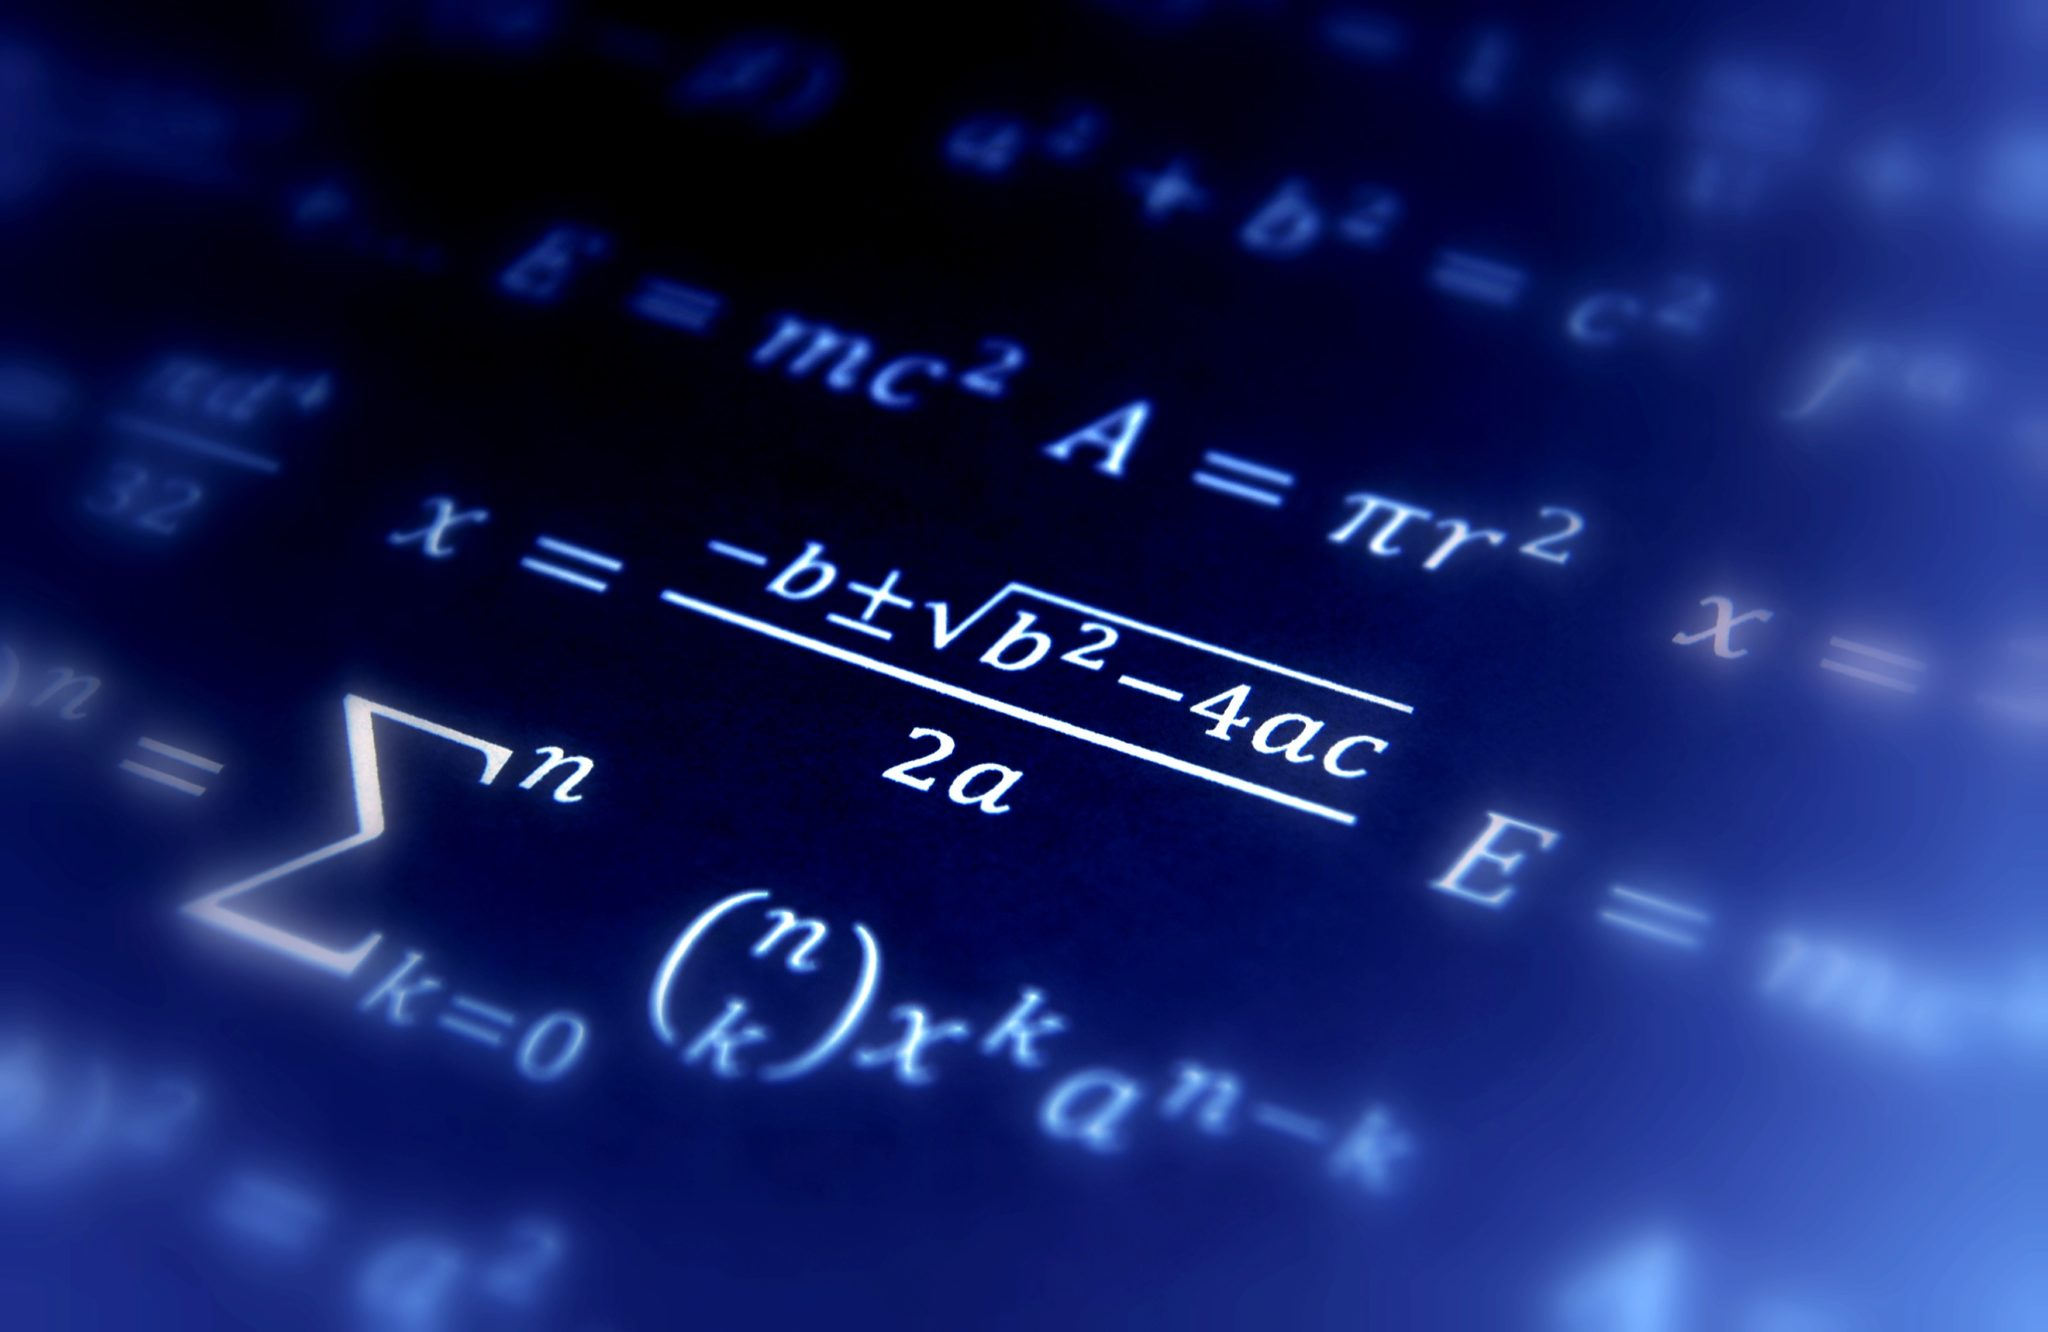 Math geometry background with formulas